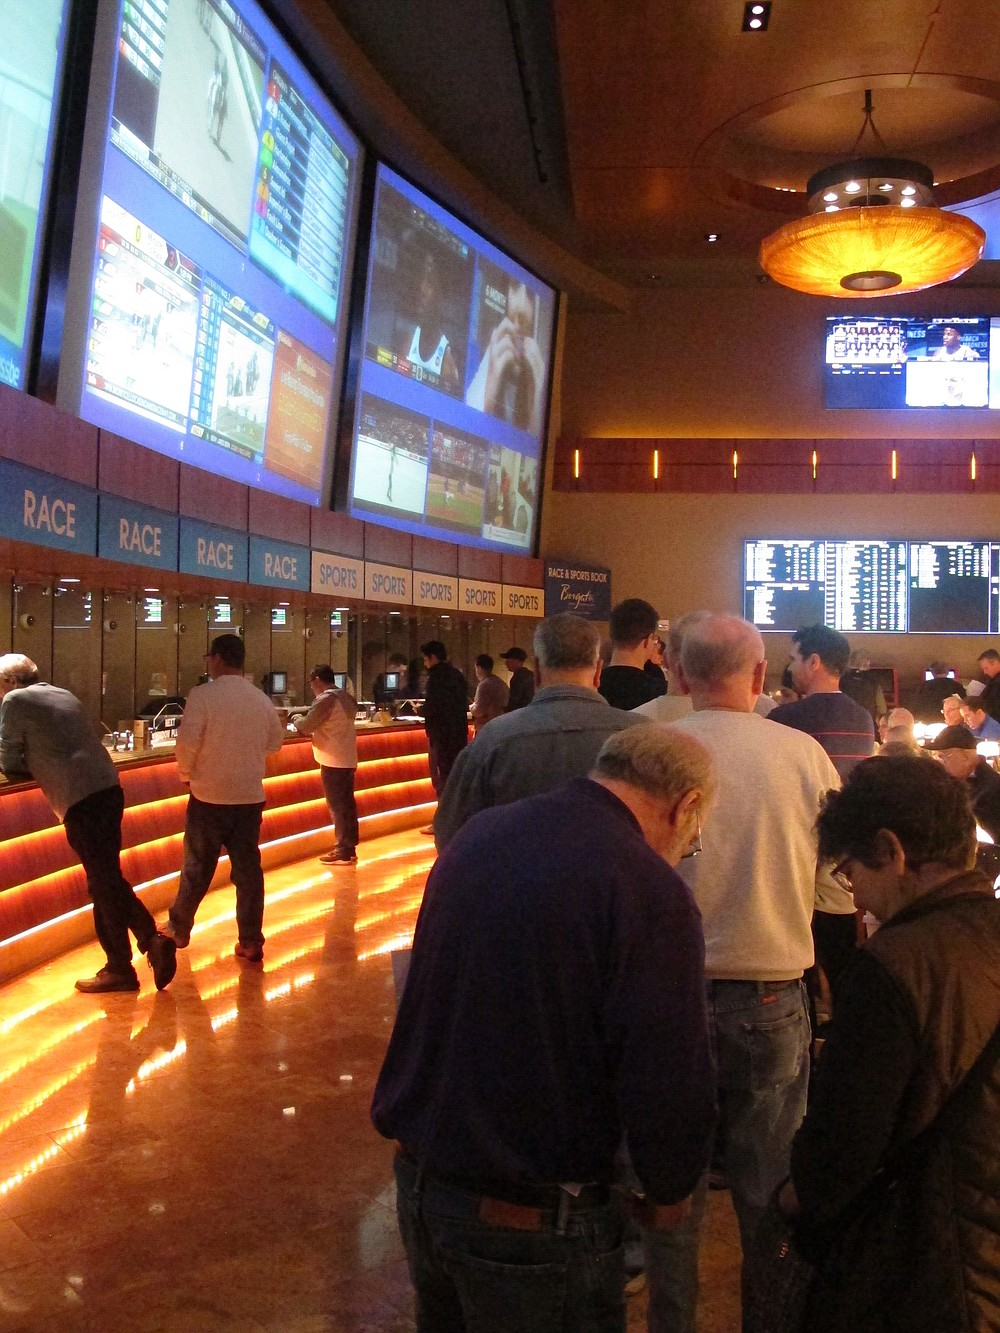 FILE - In this March 21, 2019 file photo, gamblers line up to place bets on the NCAA men's basketball tournament at the Borgata casino in Atlantic City N.J. After being closed since March due to the coronavirus outbreak, the Borgata will reopen to the general public on July 6, 2020 _ four days after much of its competition. Instead, the casino will be doing a test run for an invitation-only audience during those four days. (AP Photo/Wayne Parry, File)